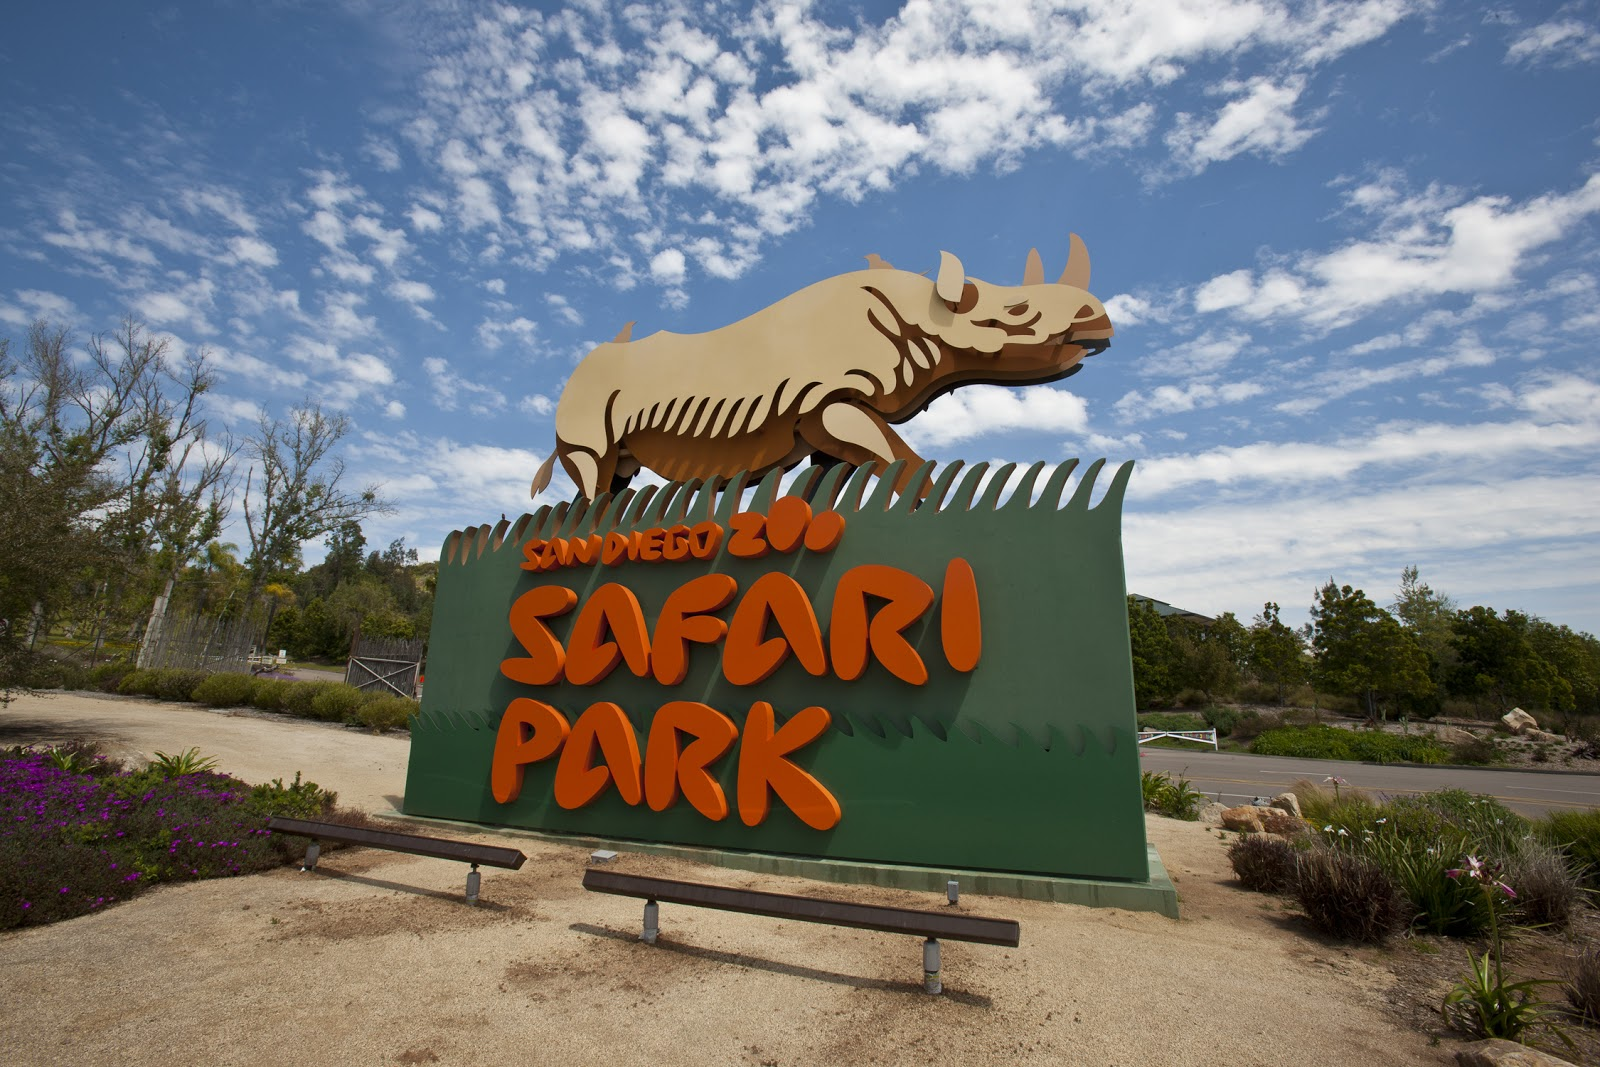 Cheap San Diego Zoo Safari Park